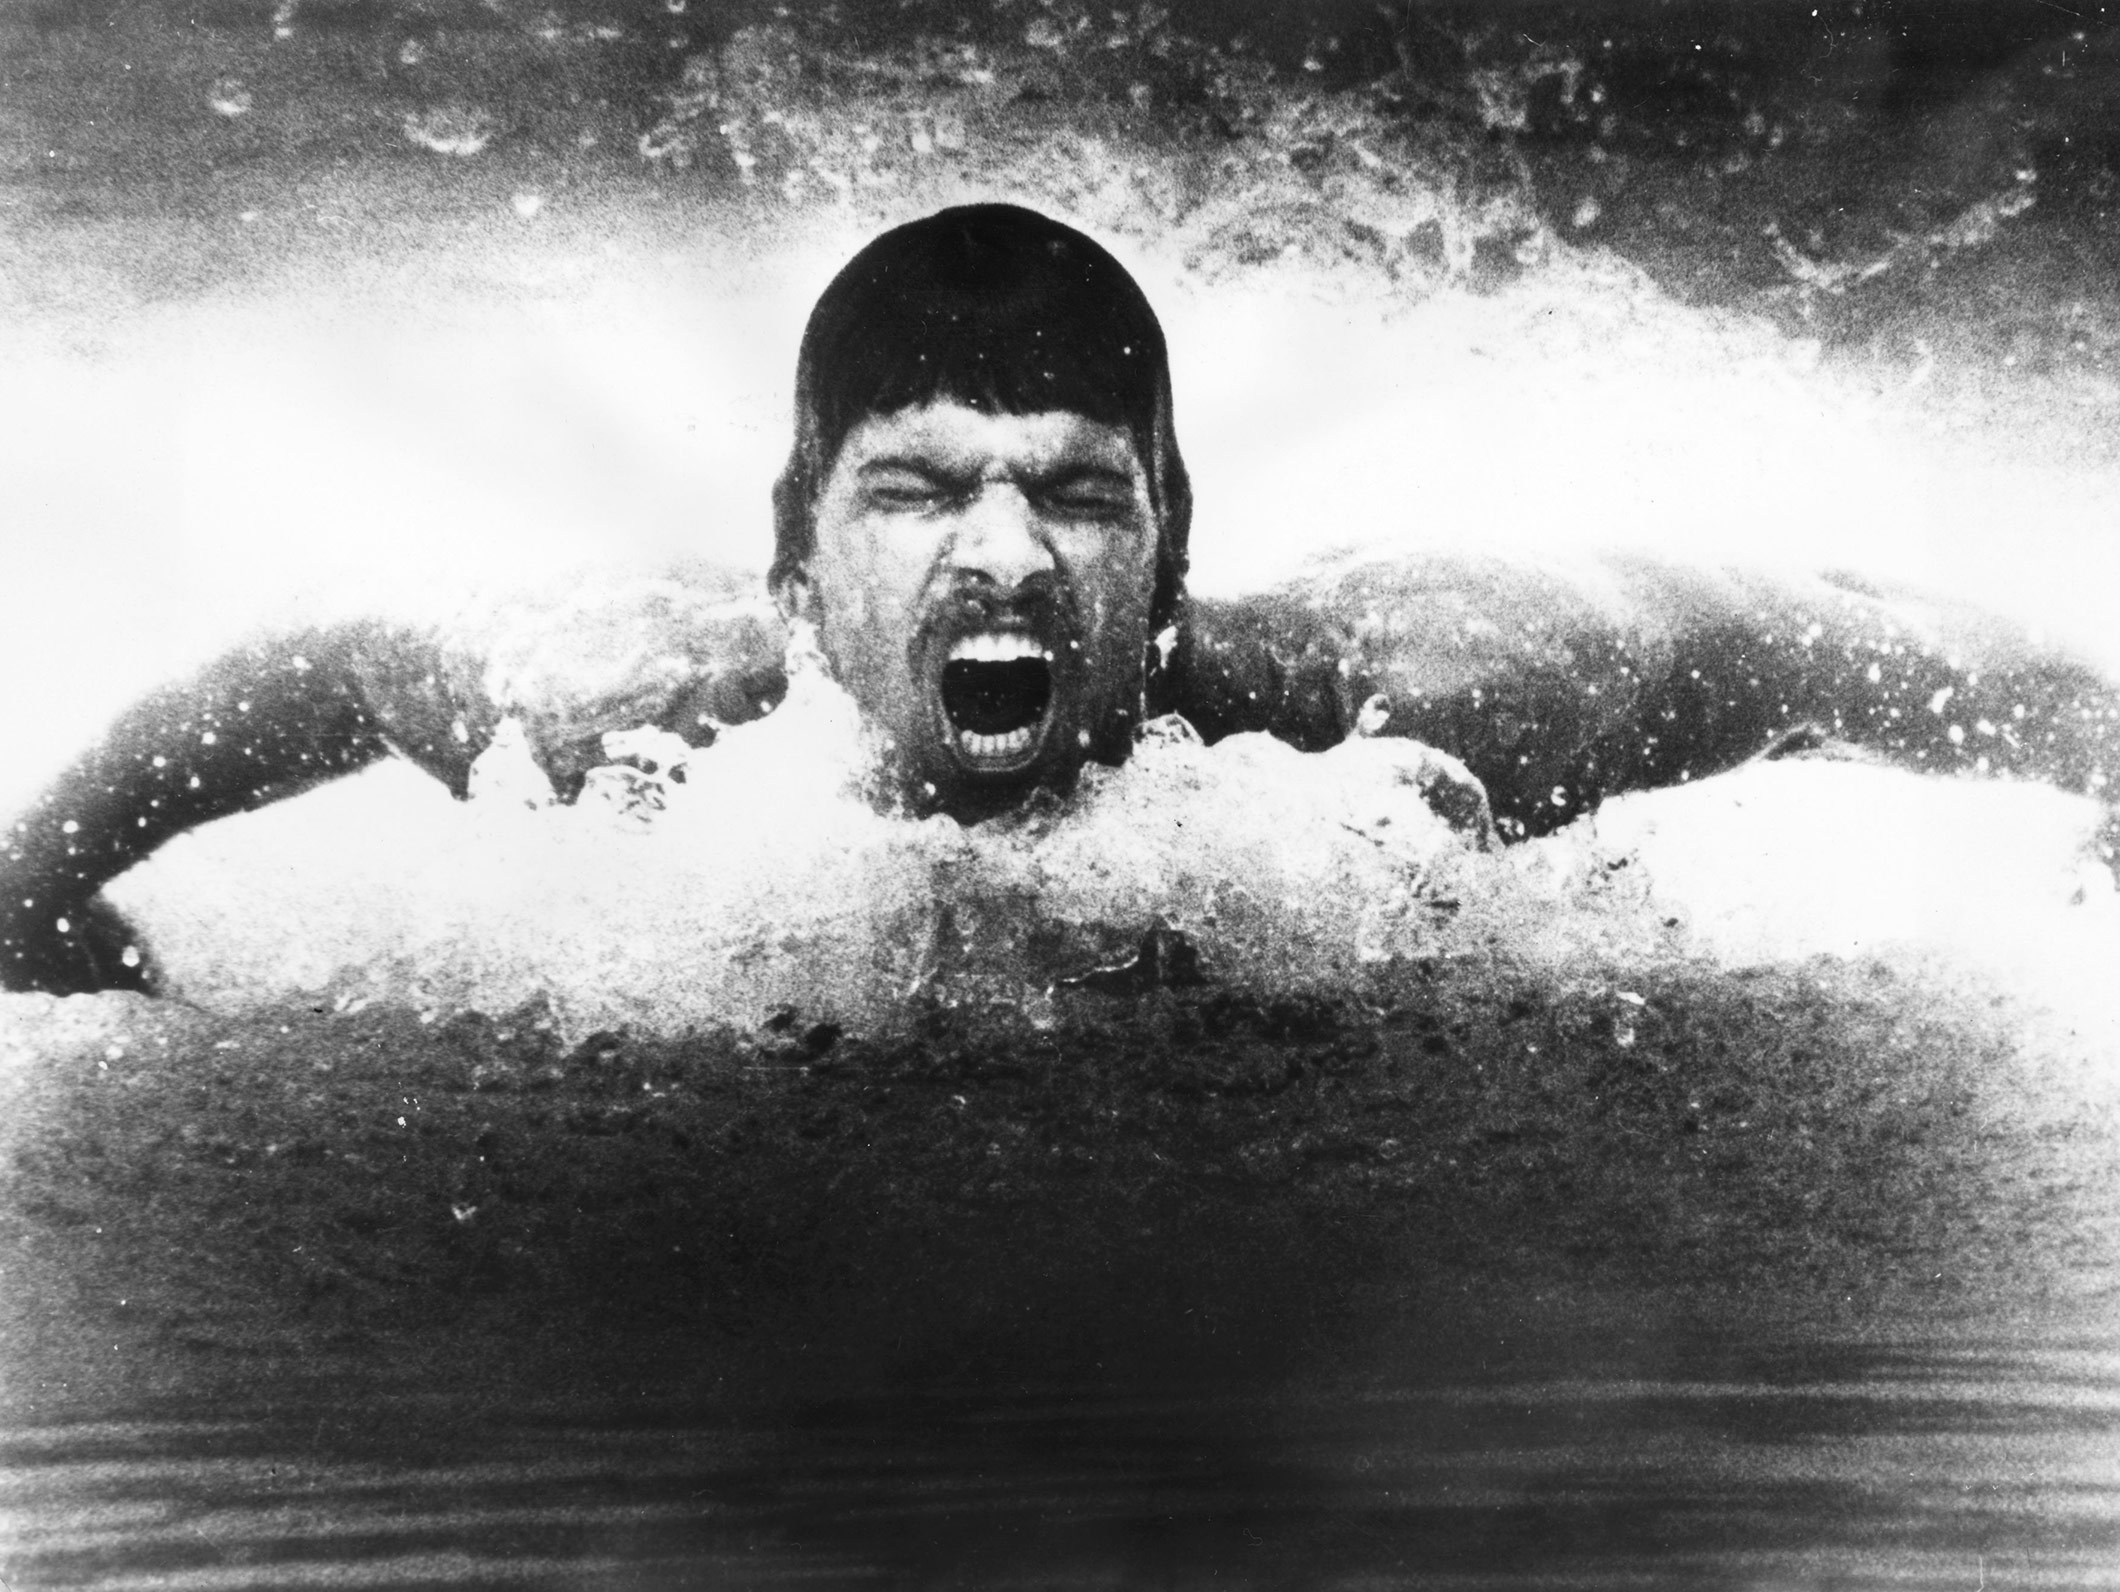 Olympic gold medal winner Mark Spitz in action during a training session.